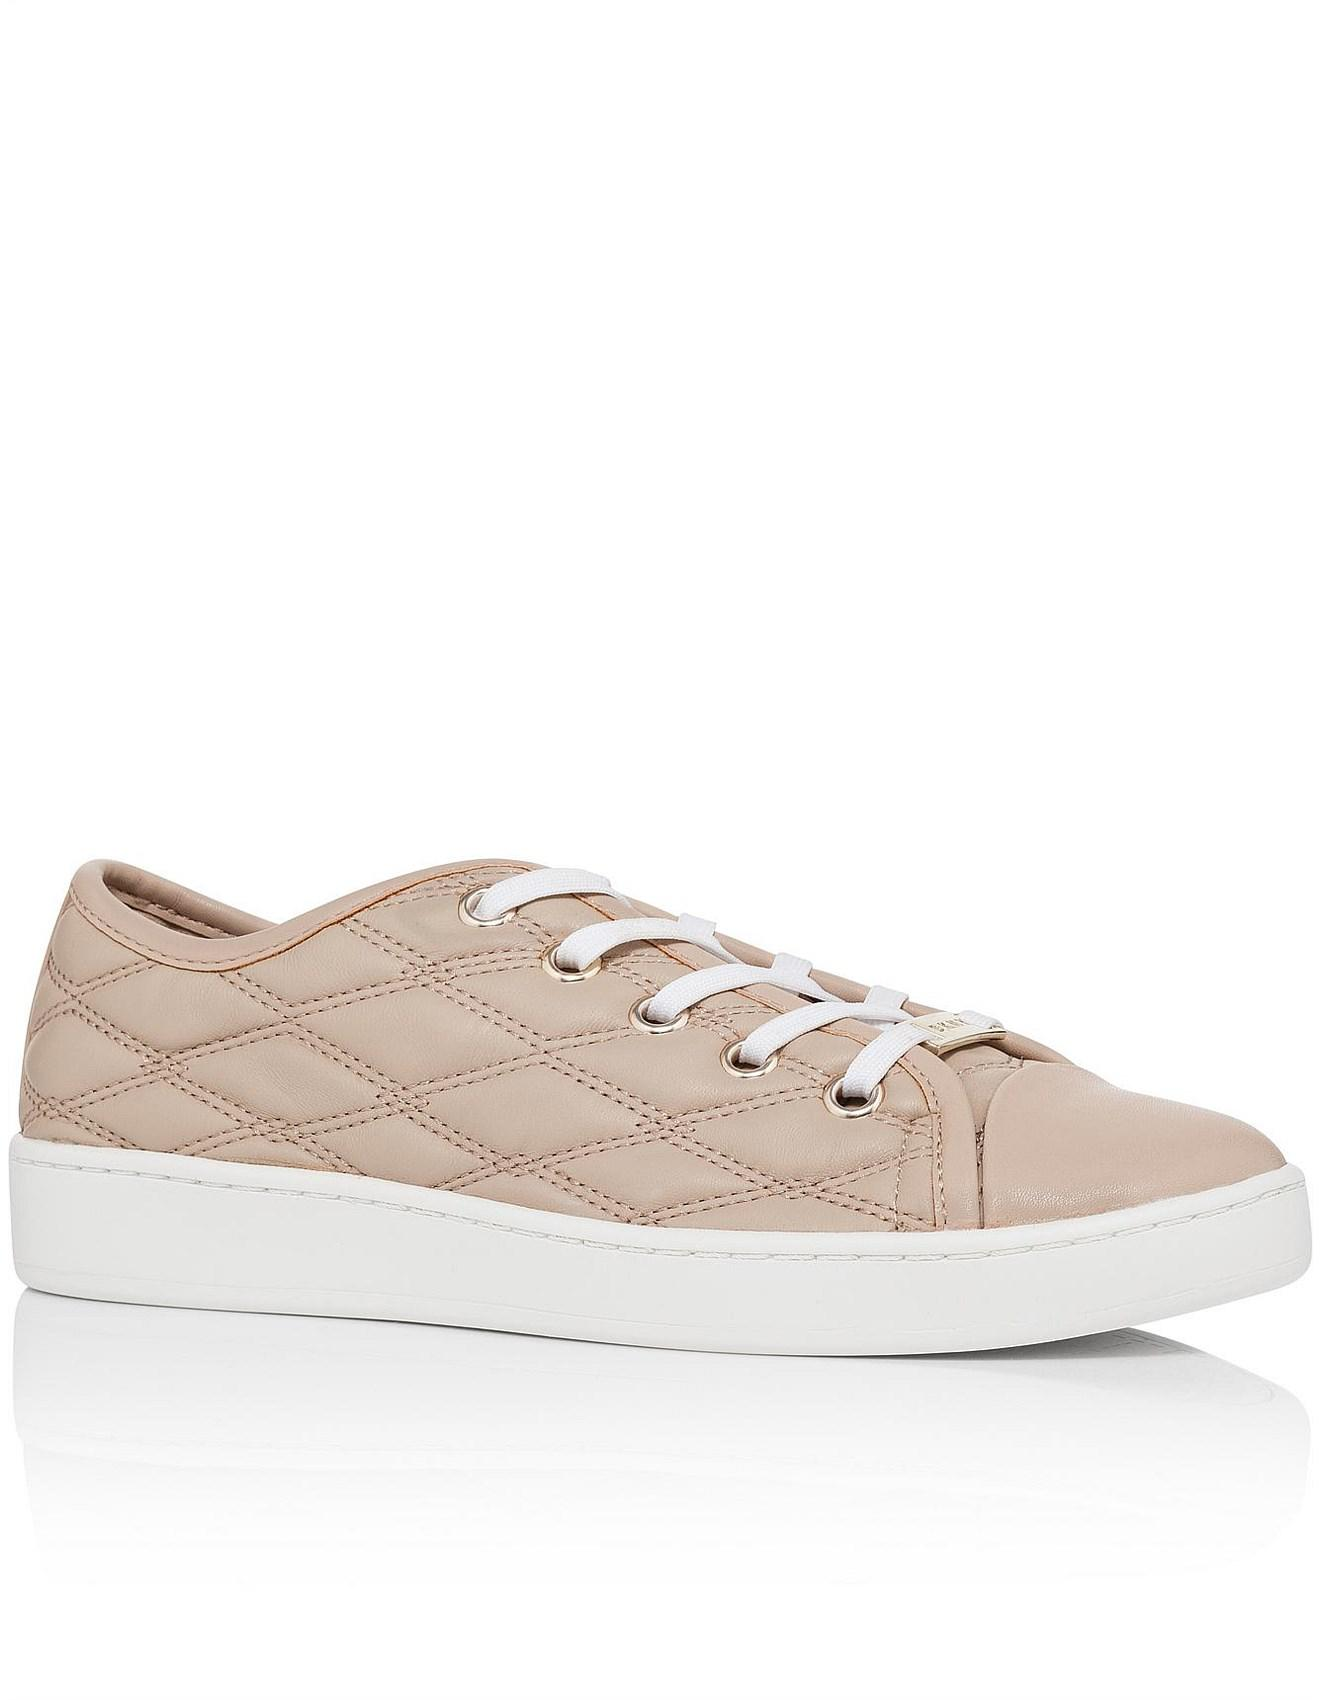 the best attitude first look best authentic DKNY Womens Brayden Binding Court Sneaker Leather Low Top Lace Up ...